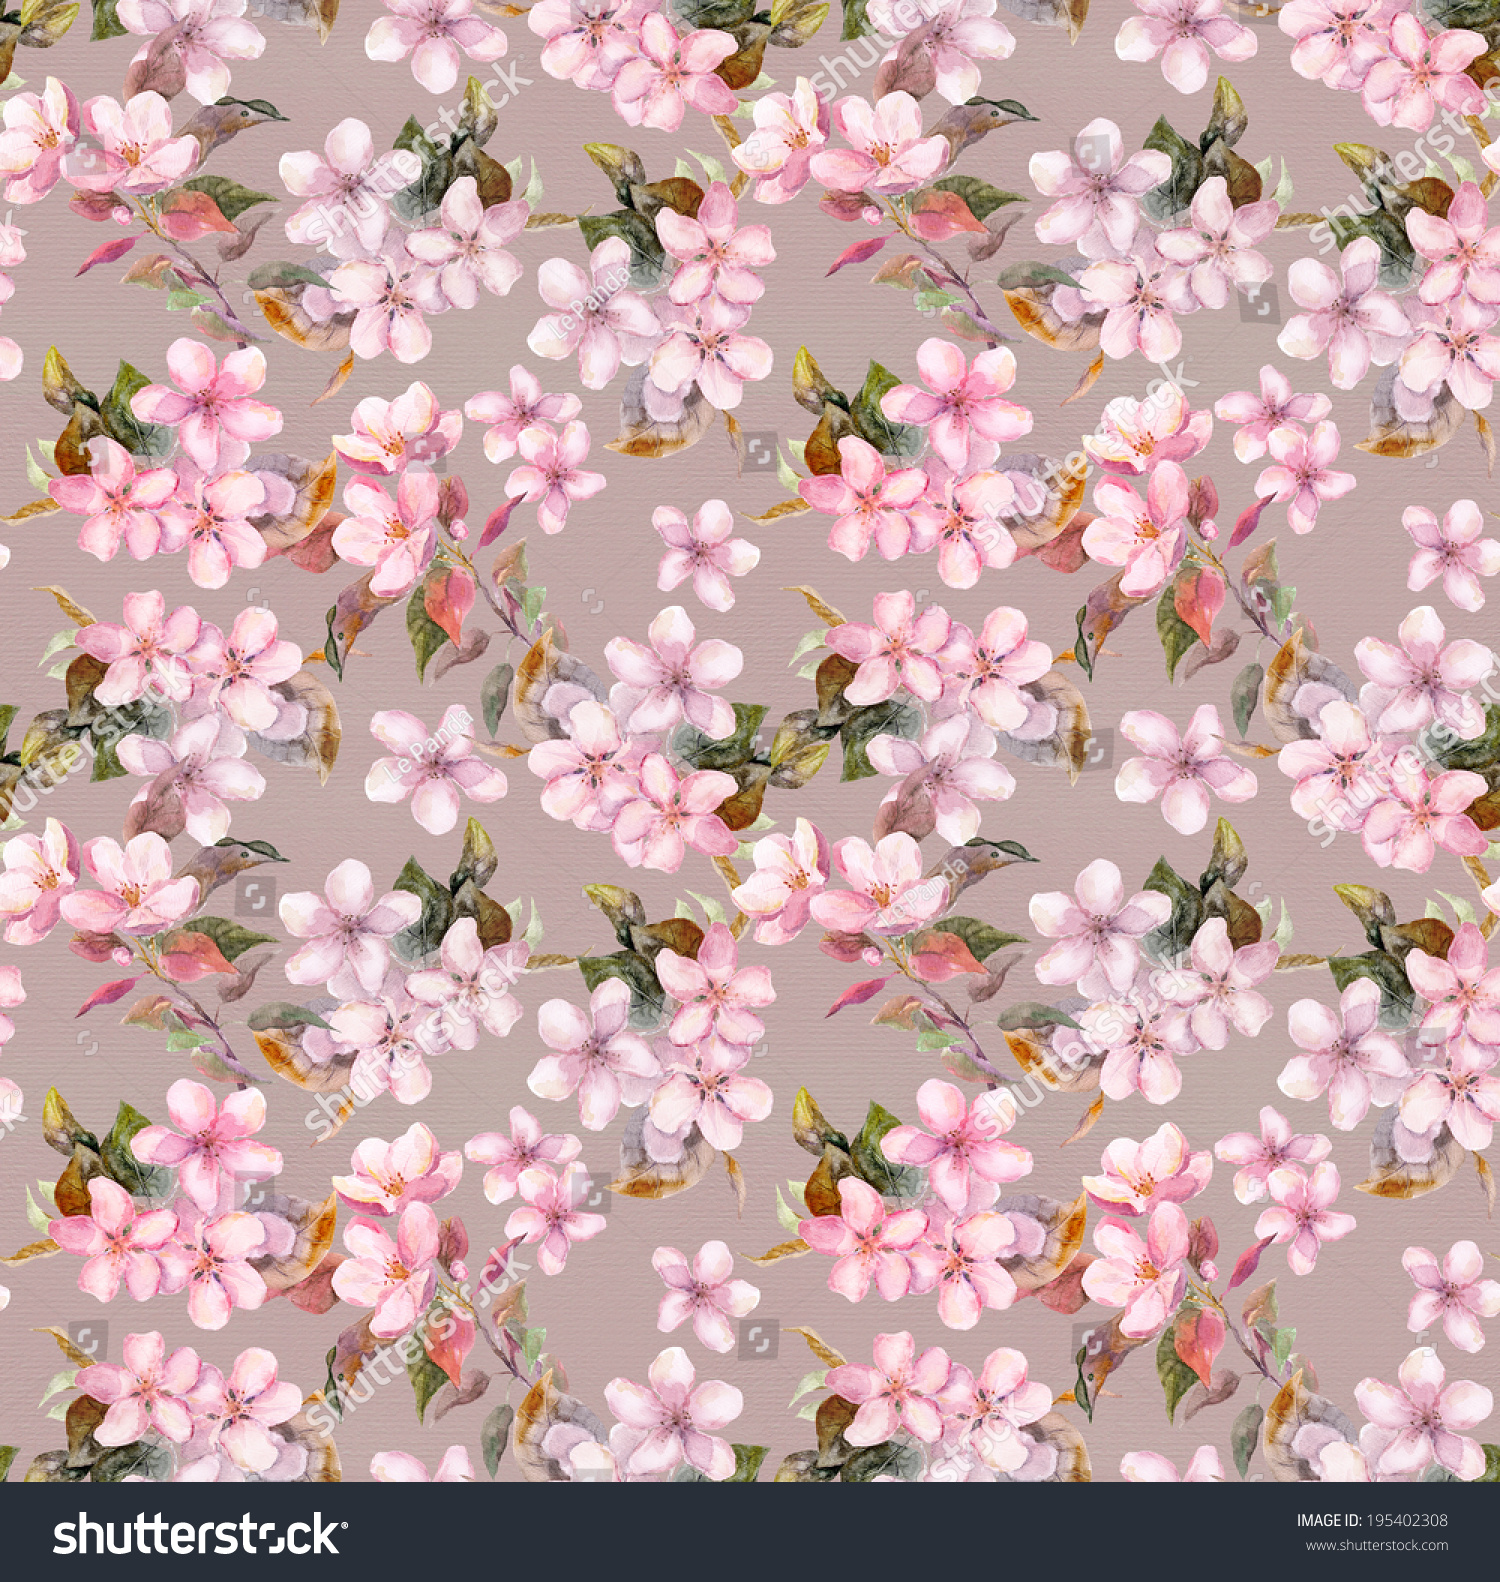 vintage pink apple cherry sakura flowers seamless floral wallpaper retro aquarelle